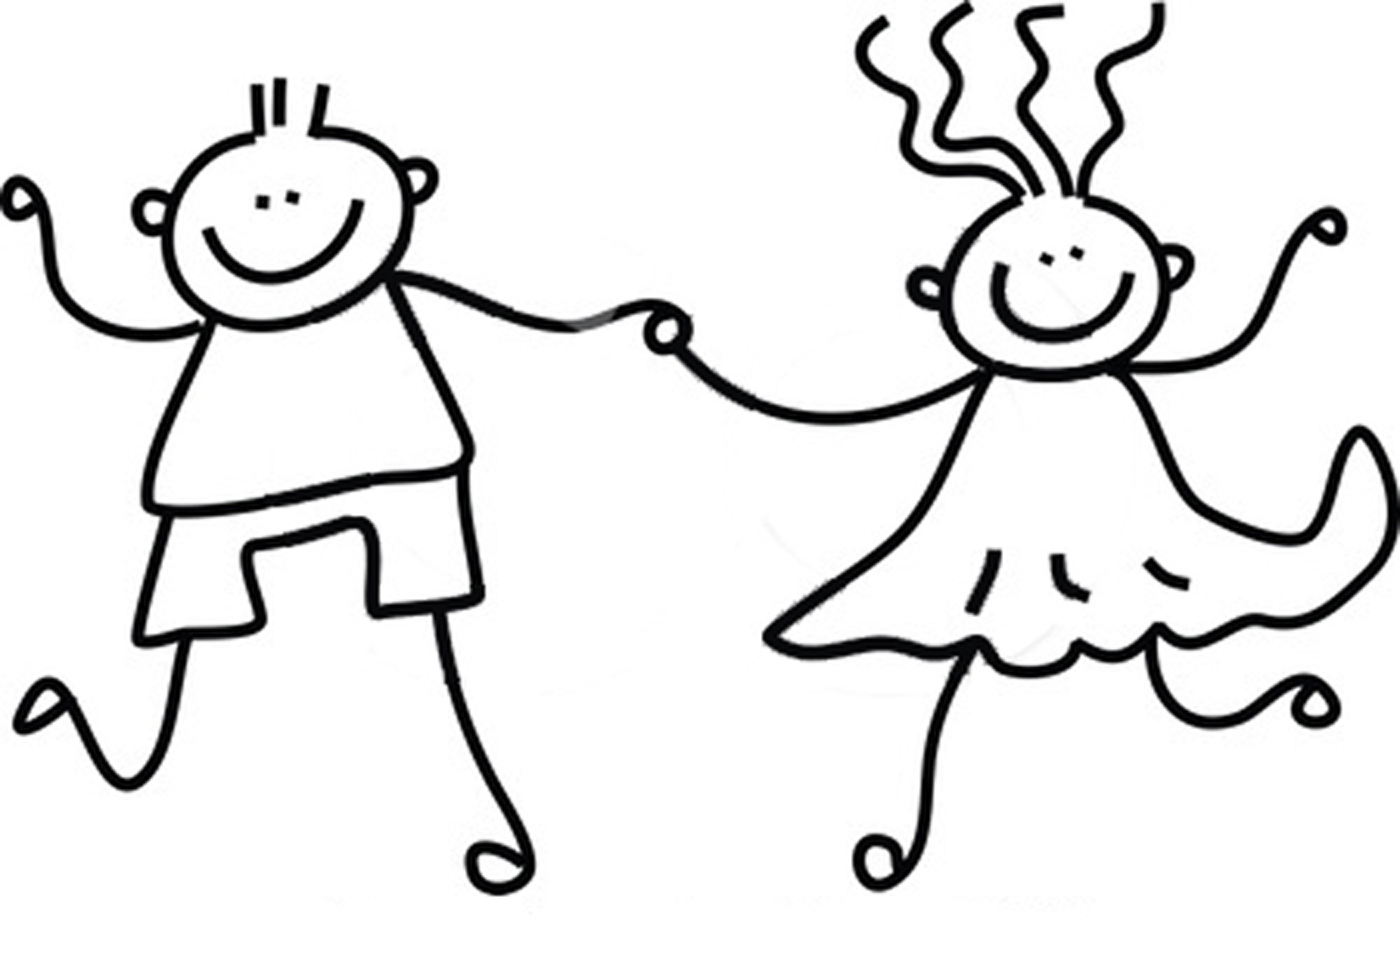 Free Rf Clipart Illustration Of A Childs Sketch Of A Black And White